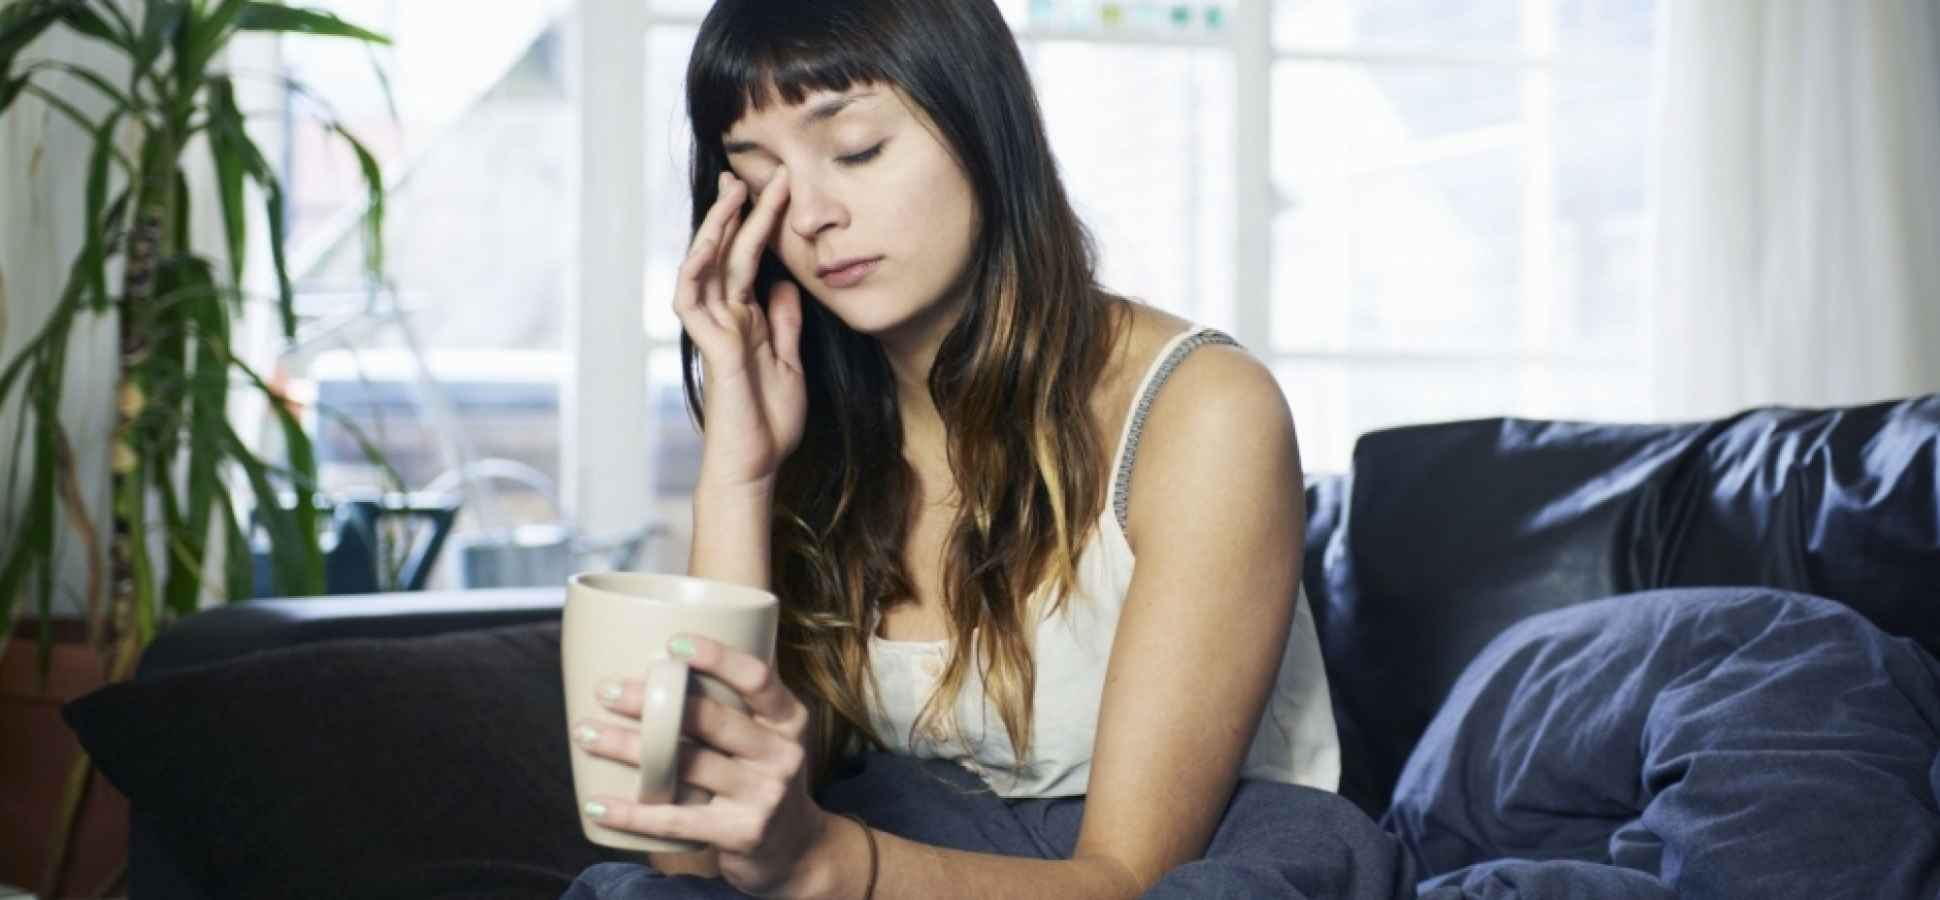 Neuroscientist to the Super Busy: Sleep Is Work Too